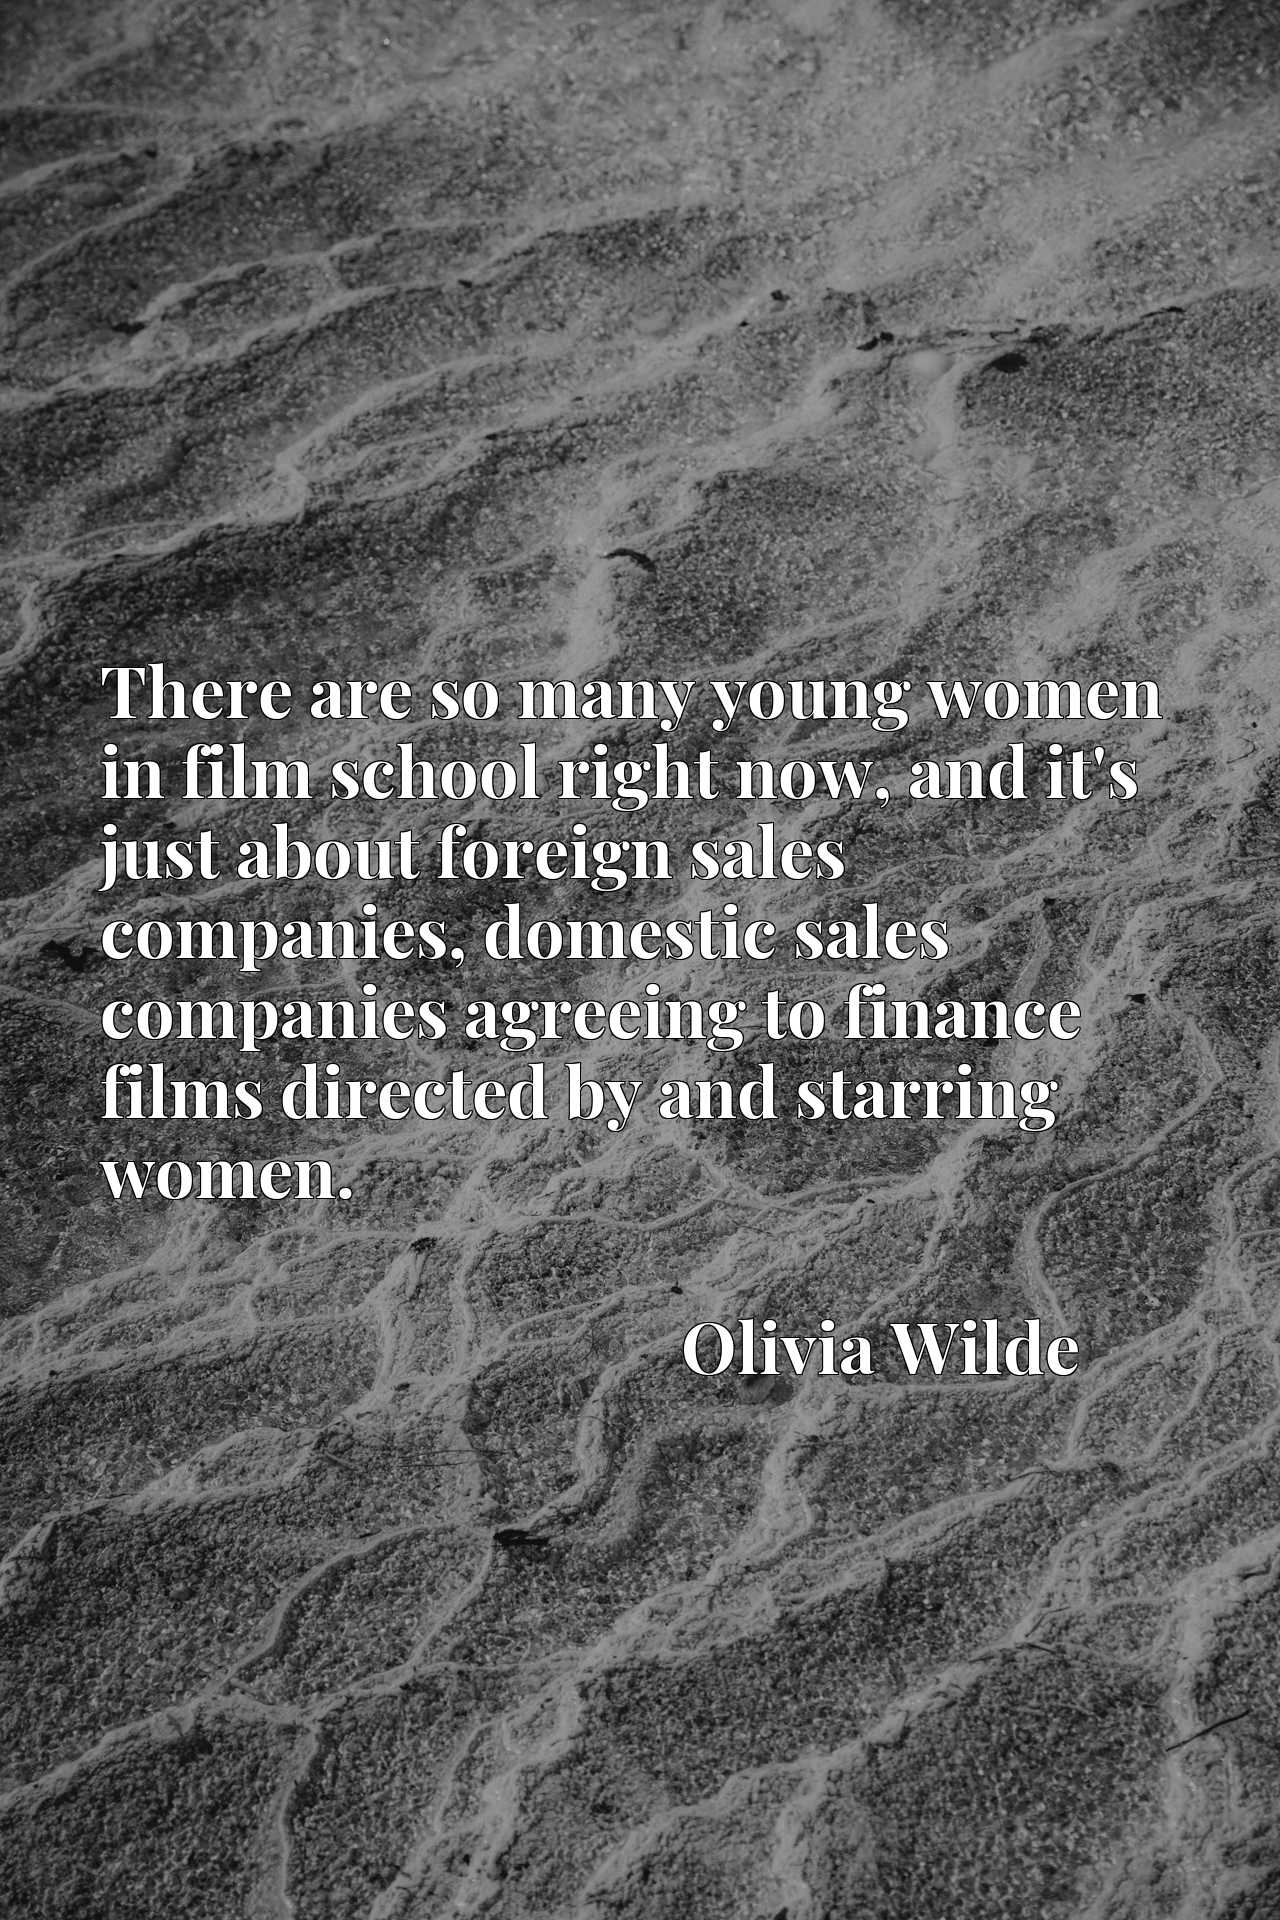 There are so many young women in film school right now, and it's just about foreign sales companies, domestic sales companies agreeing to finance films directed by and starring women.